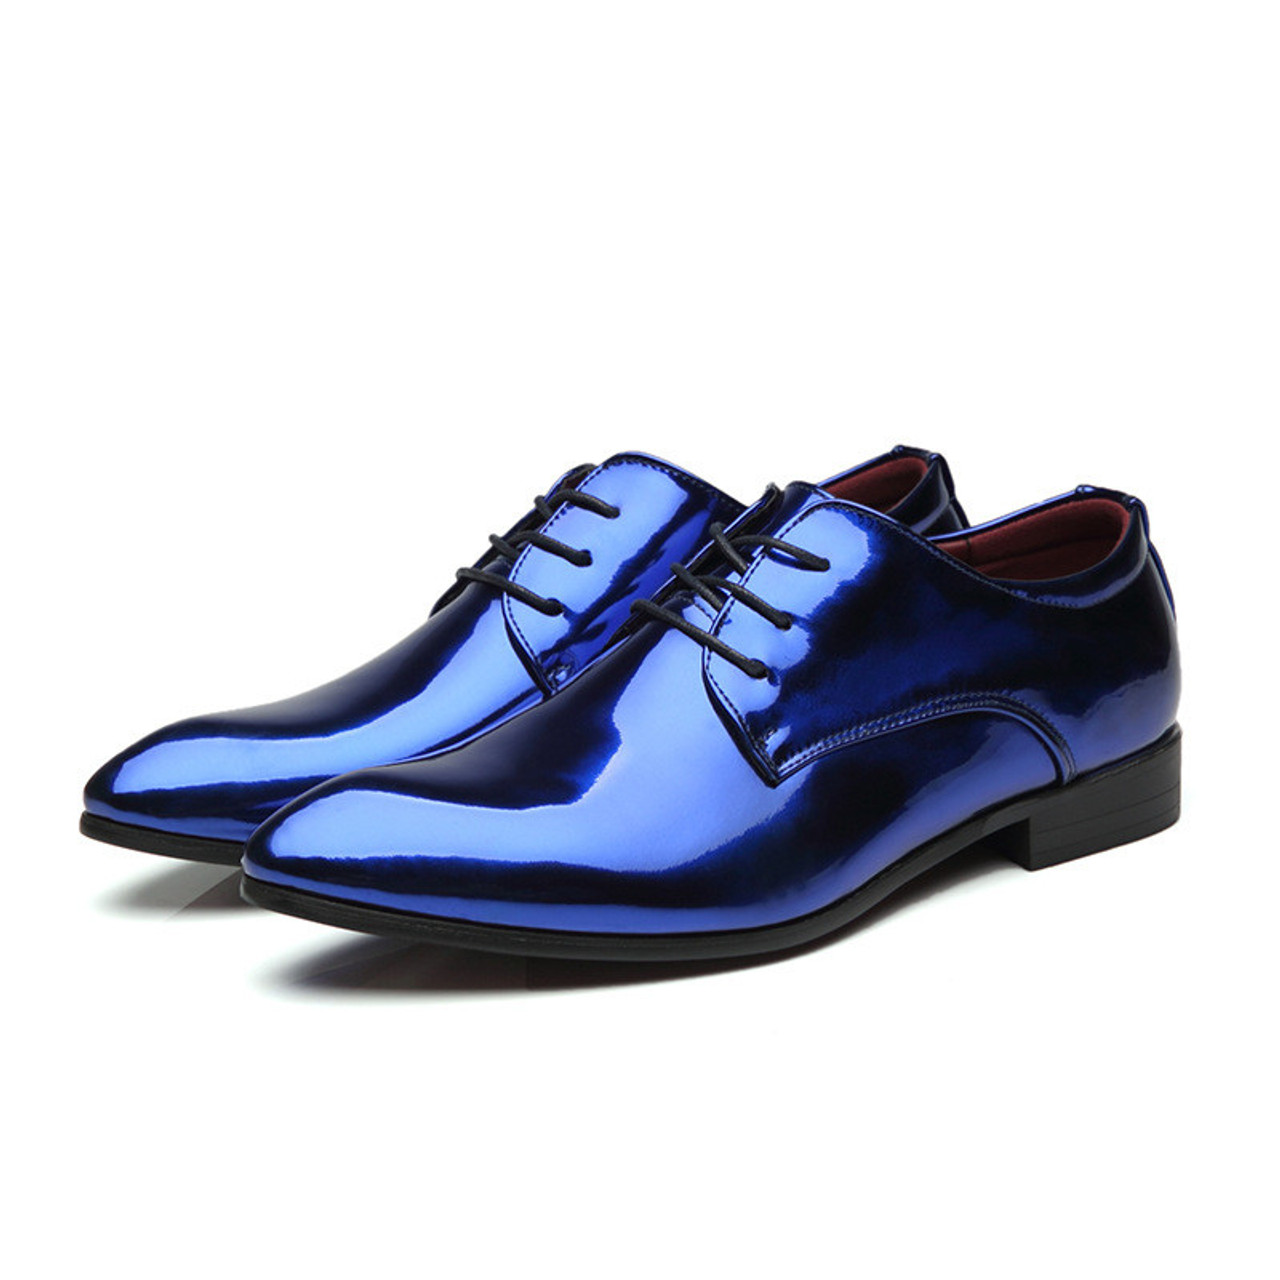 Merkmak Luxury Brand Men Glossy Oxfords Shoes New Trend Fashion British Style Male Lace Up Casual Shoe Larger Size Comfortable